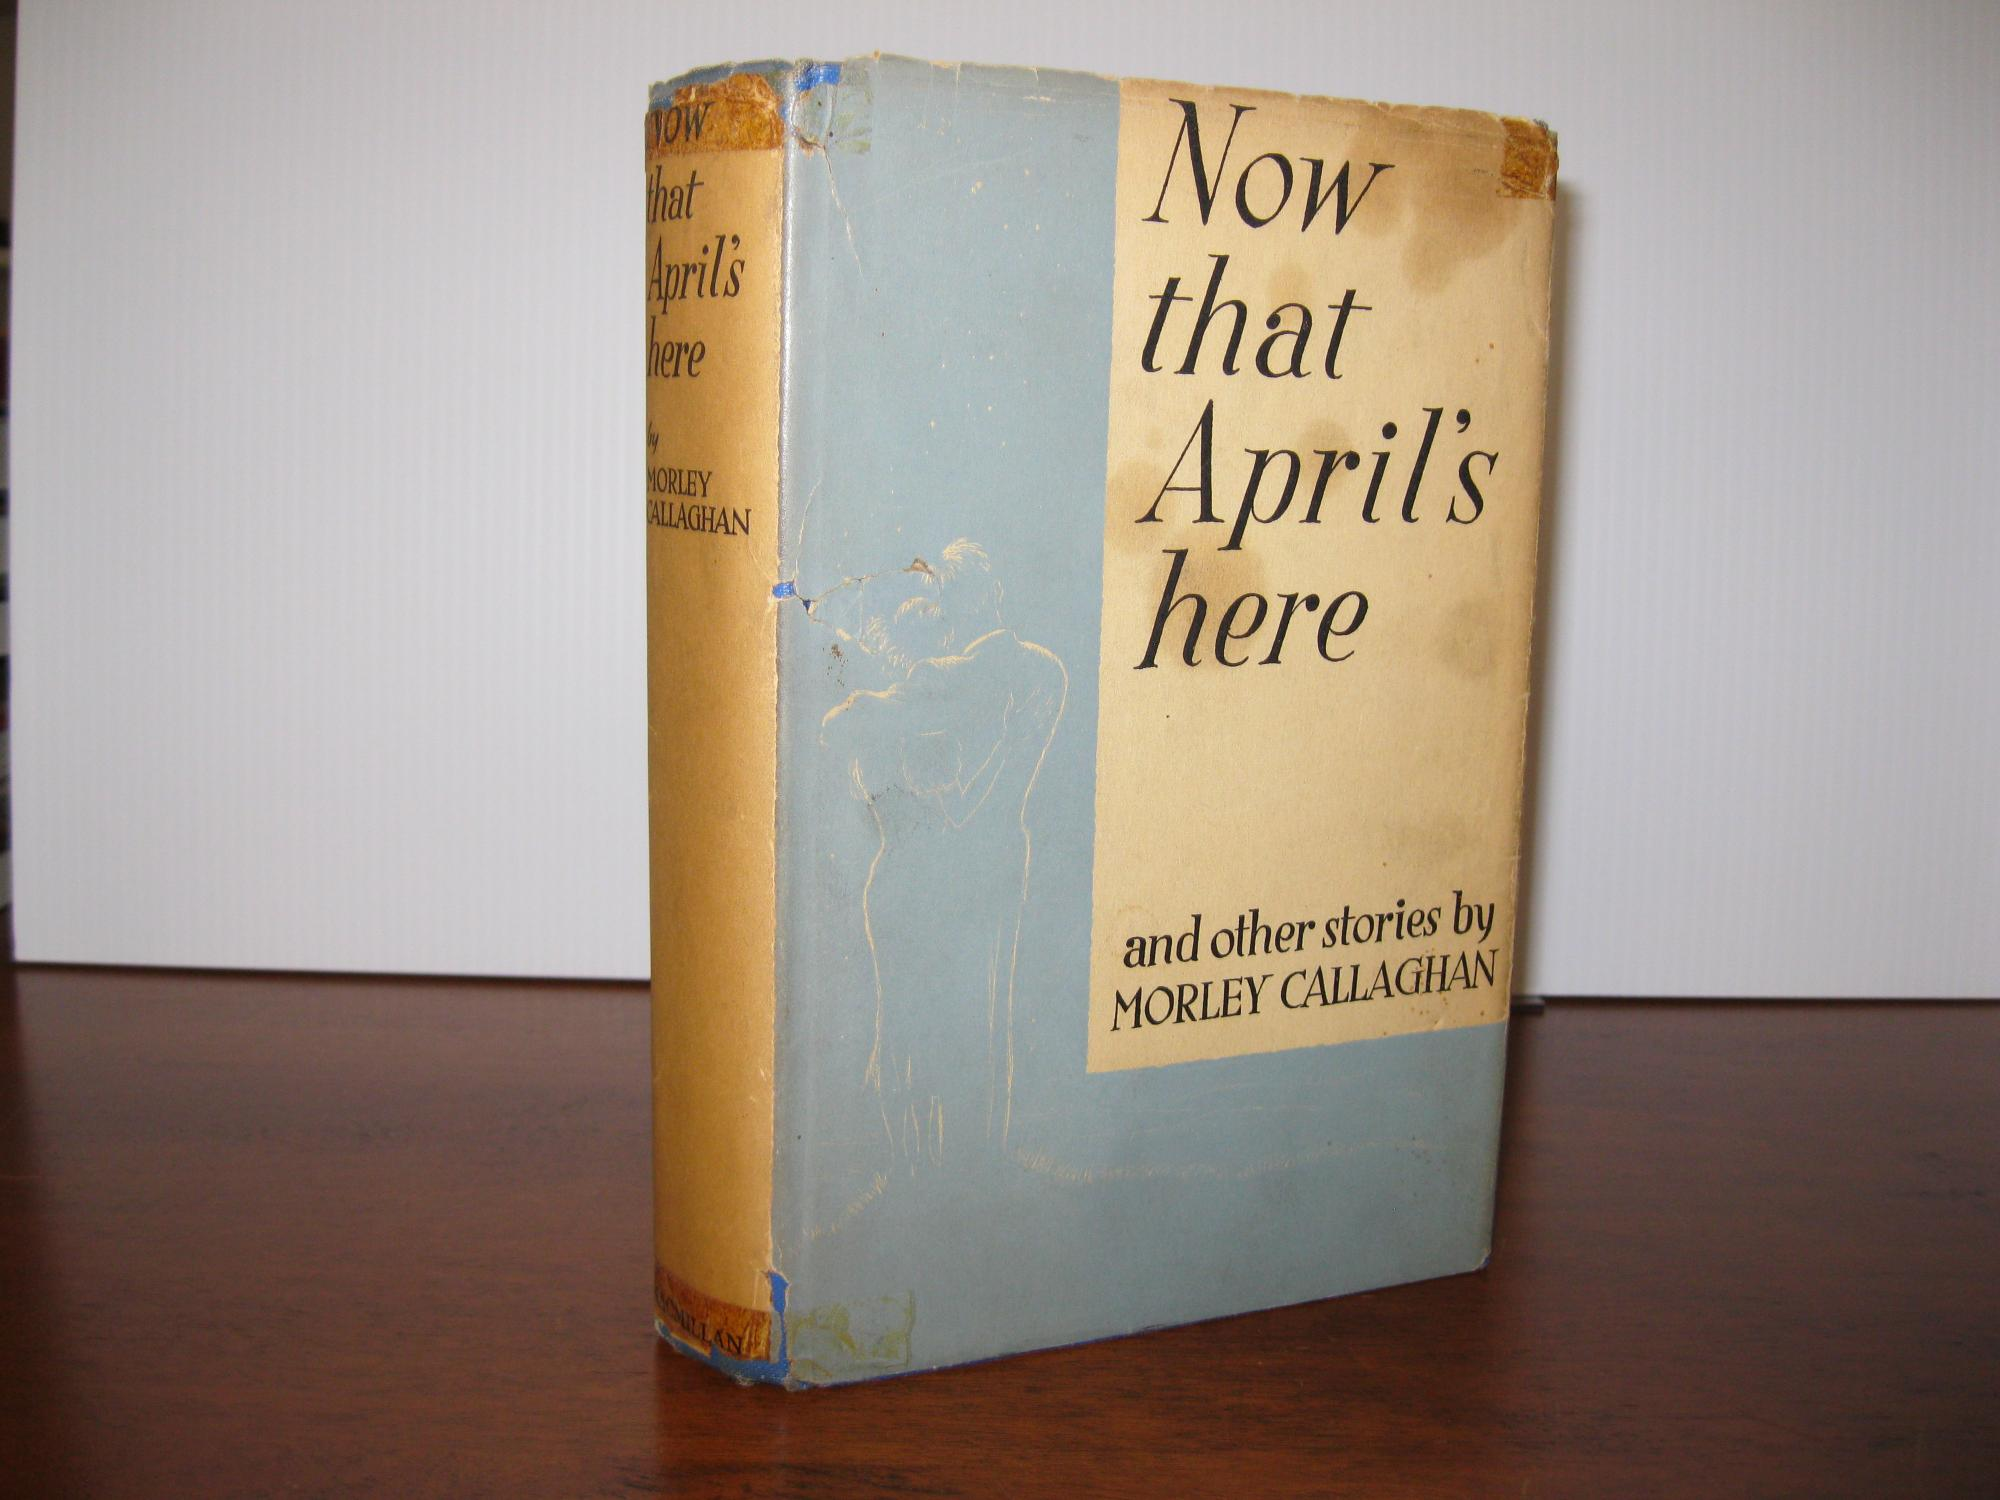 NOW_THAT_APRILS_HERE_AND_OTHER_STORIES_CALLAGHAN_MORLEY_Very_Good_Hardcover